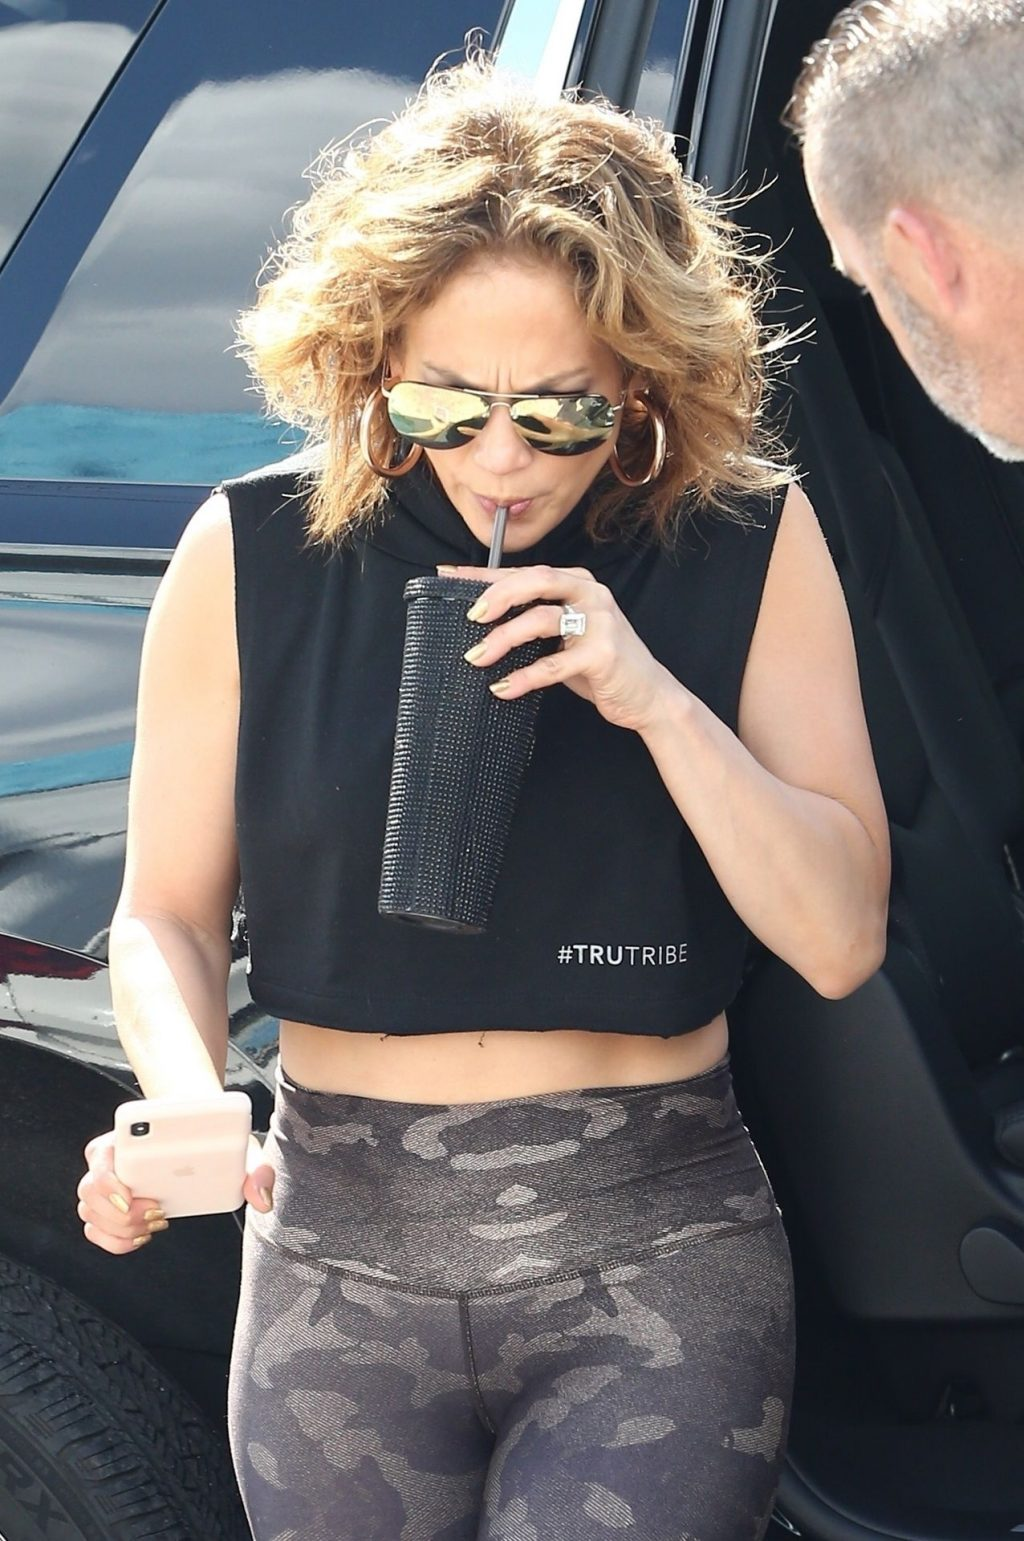 Jennifer Lopez Sexy The Fappening Blog 6 1024x1541 - Jennifer Lopez Shows That Rock Hard Abs Don't Just Happen as She Dutifully Hits the Gym in Miami (48 Photos)